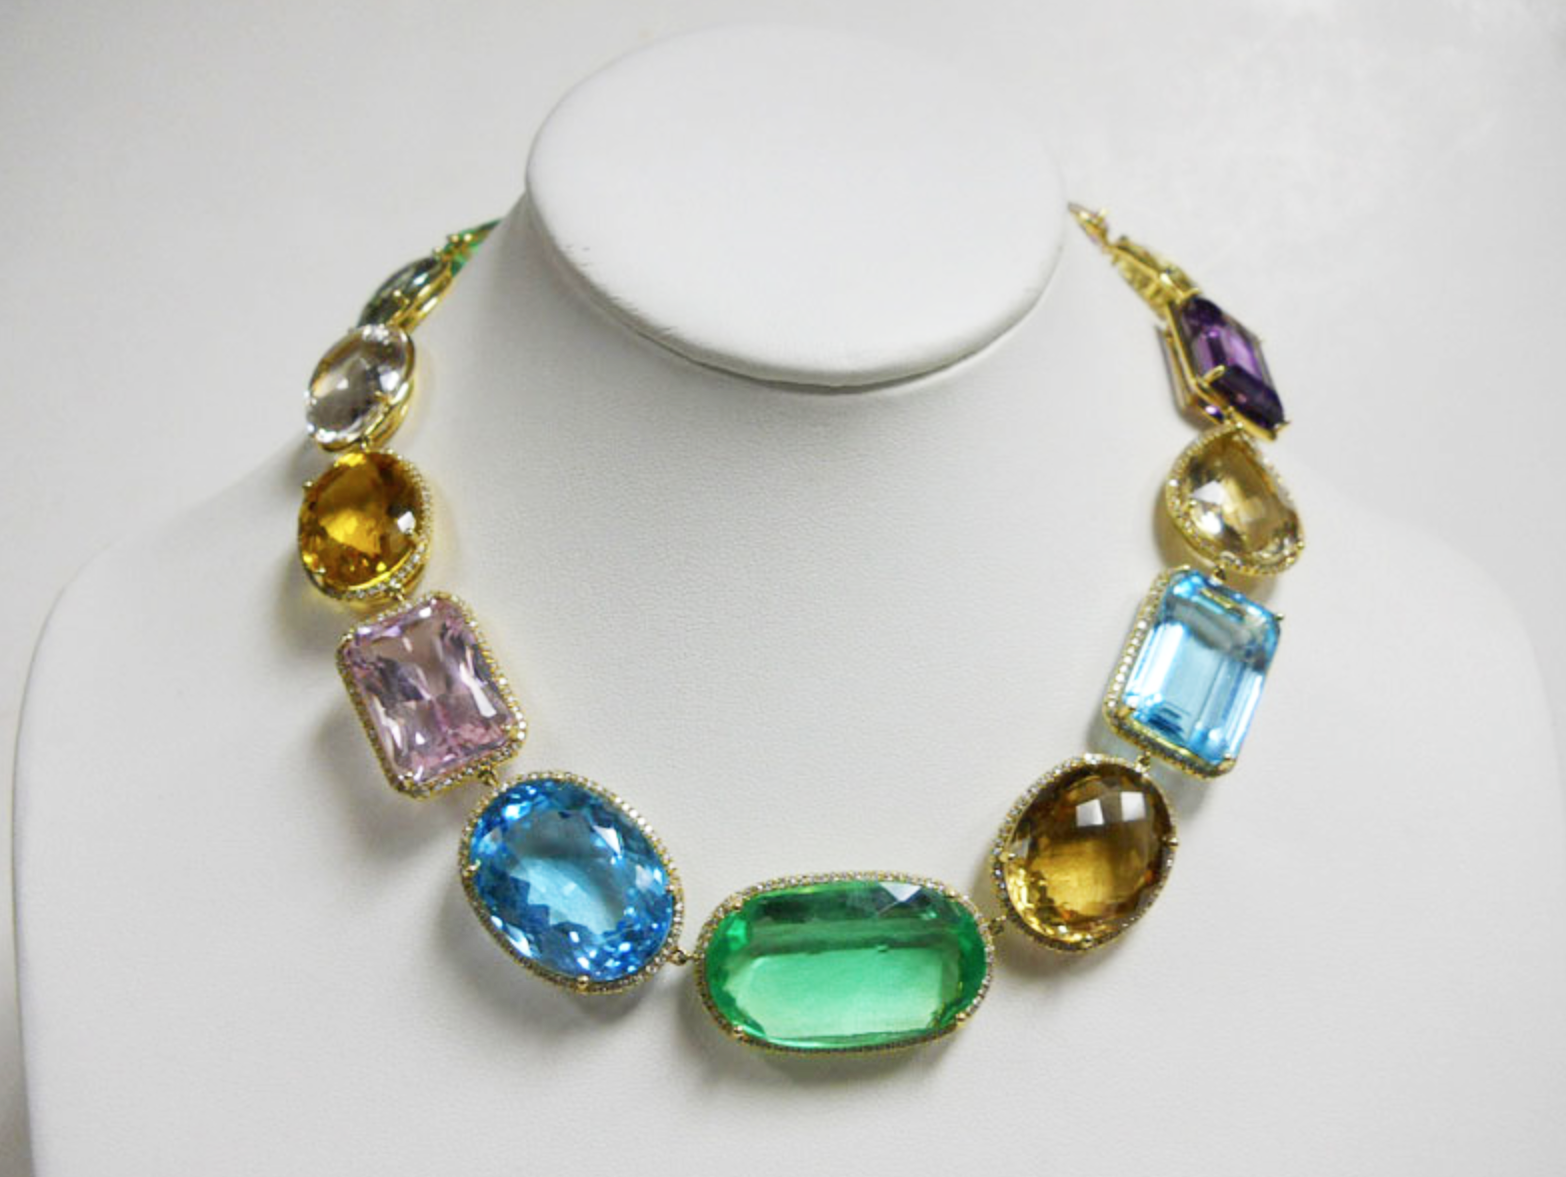 Alexia Echevarria wears this vibrant multi color gemstone & diamond necklace featuring kunzite, citrine, blue topaz, rock crystal and green quartz to an elegant luncheon.